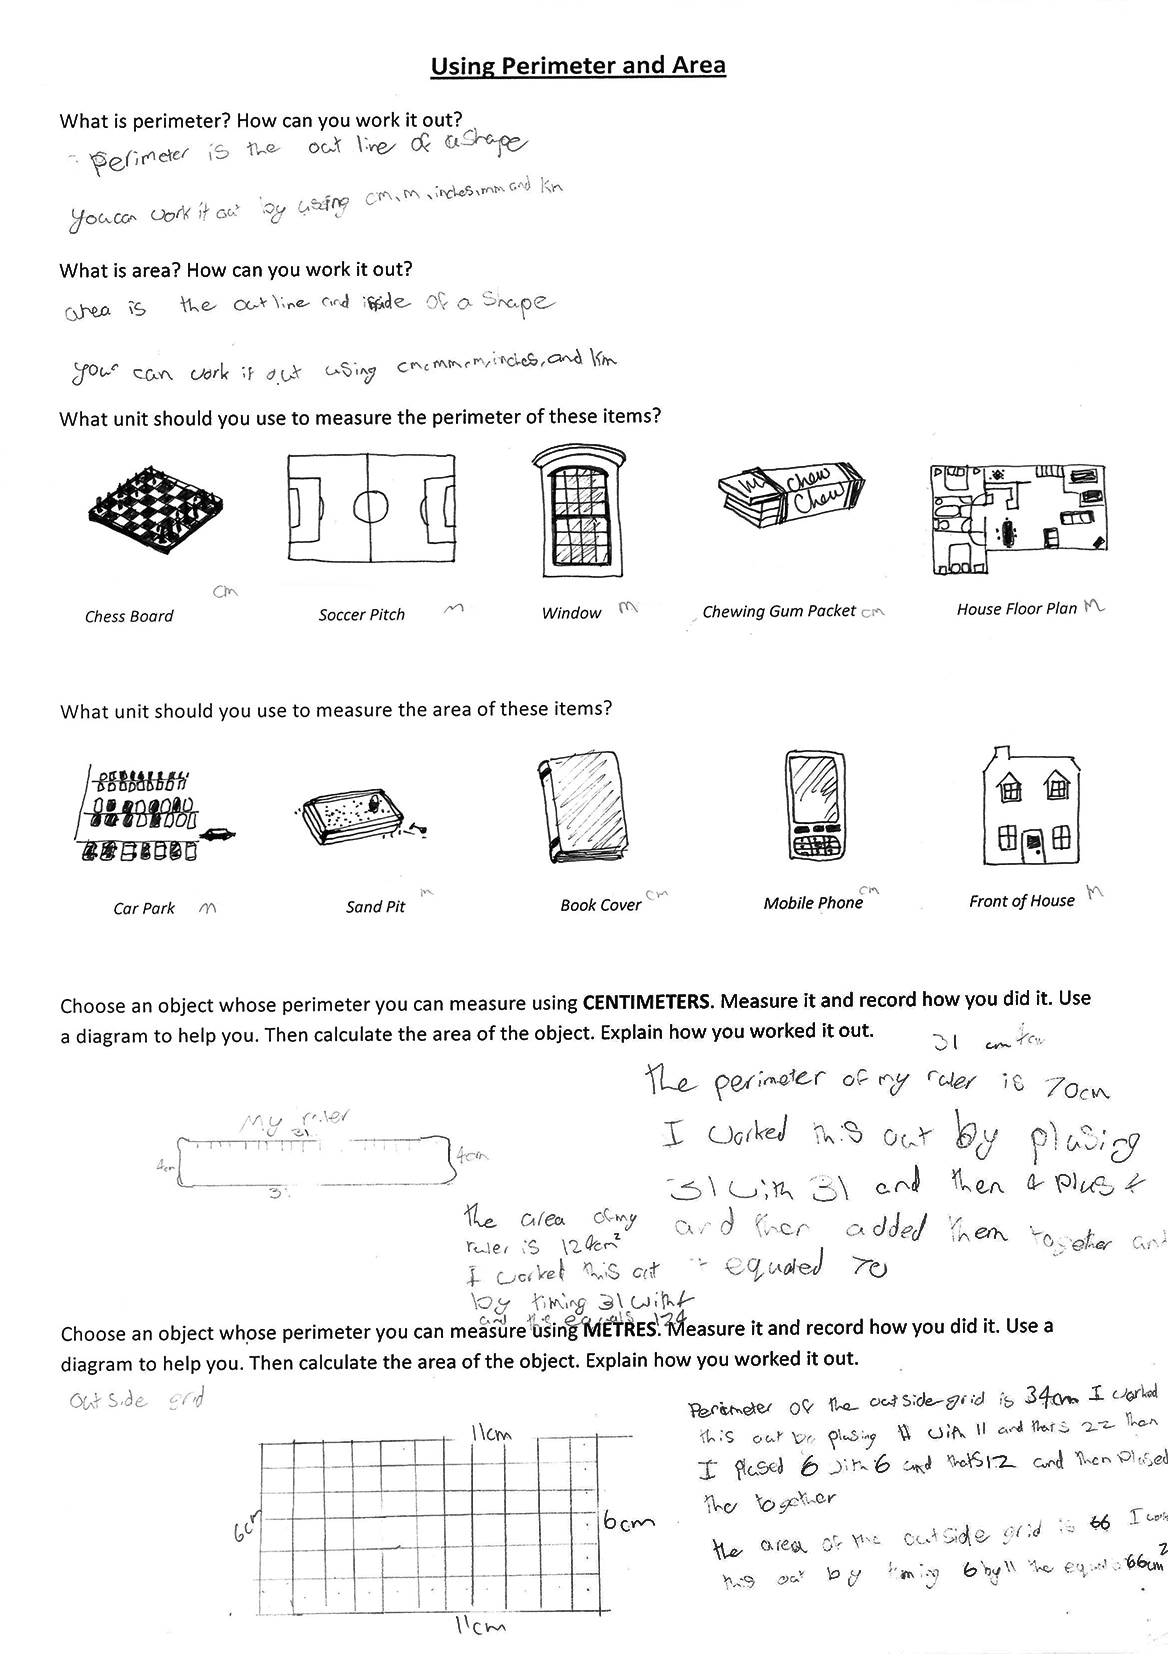 Work sample 7 Measurement: Using perimeter and area Gives a basic explanation of perimeter and area. Chooses appropriate units to measure items. Calculates area and perimeter of foursided figures.